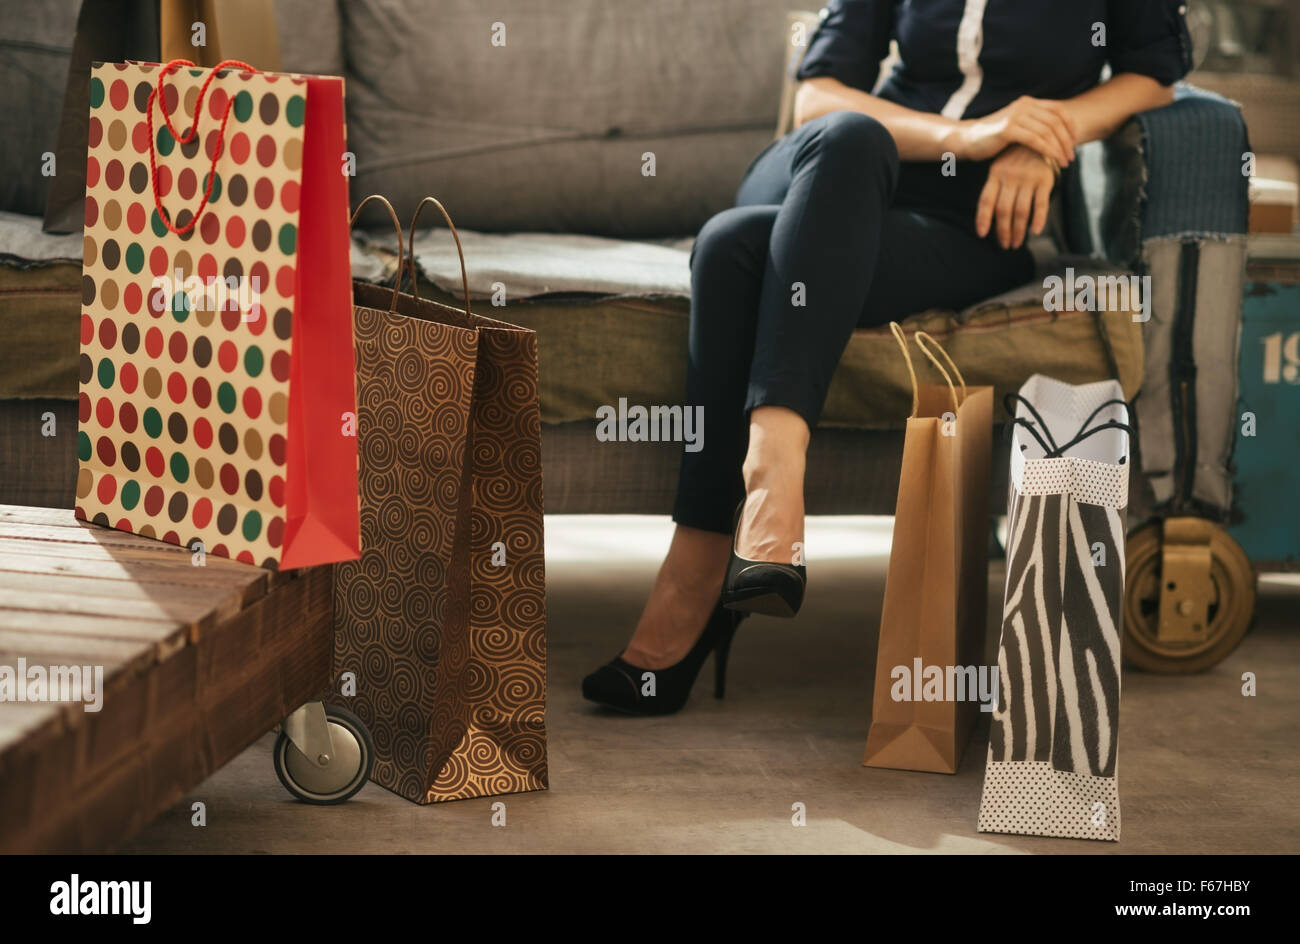 Close up on colourful shopping bags and elegant woman sitting on couch in modern loft apartment in background. Luxurious - Stock Image